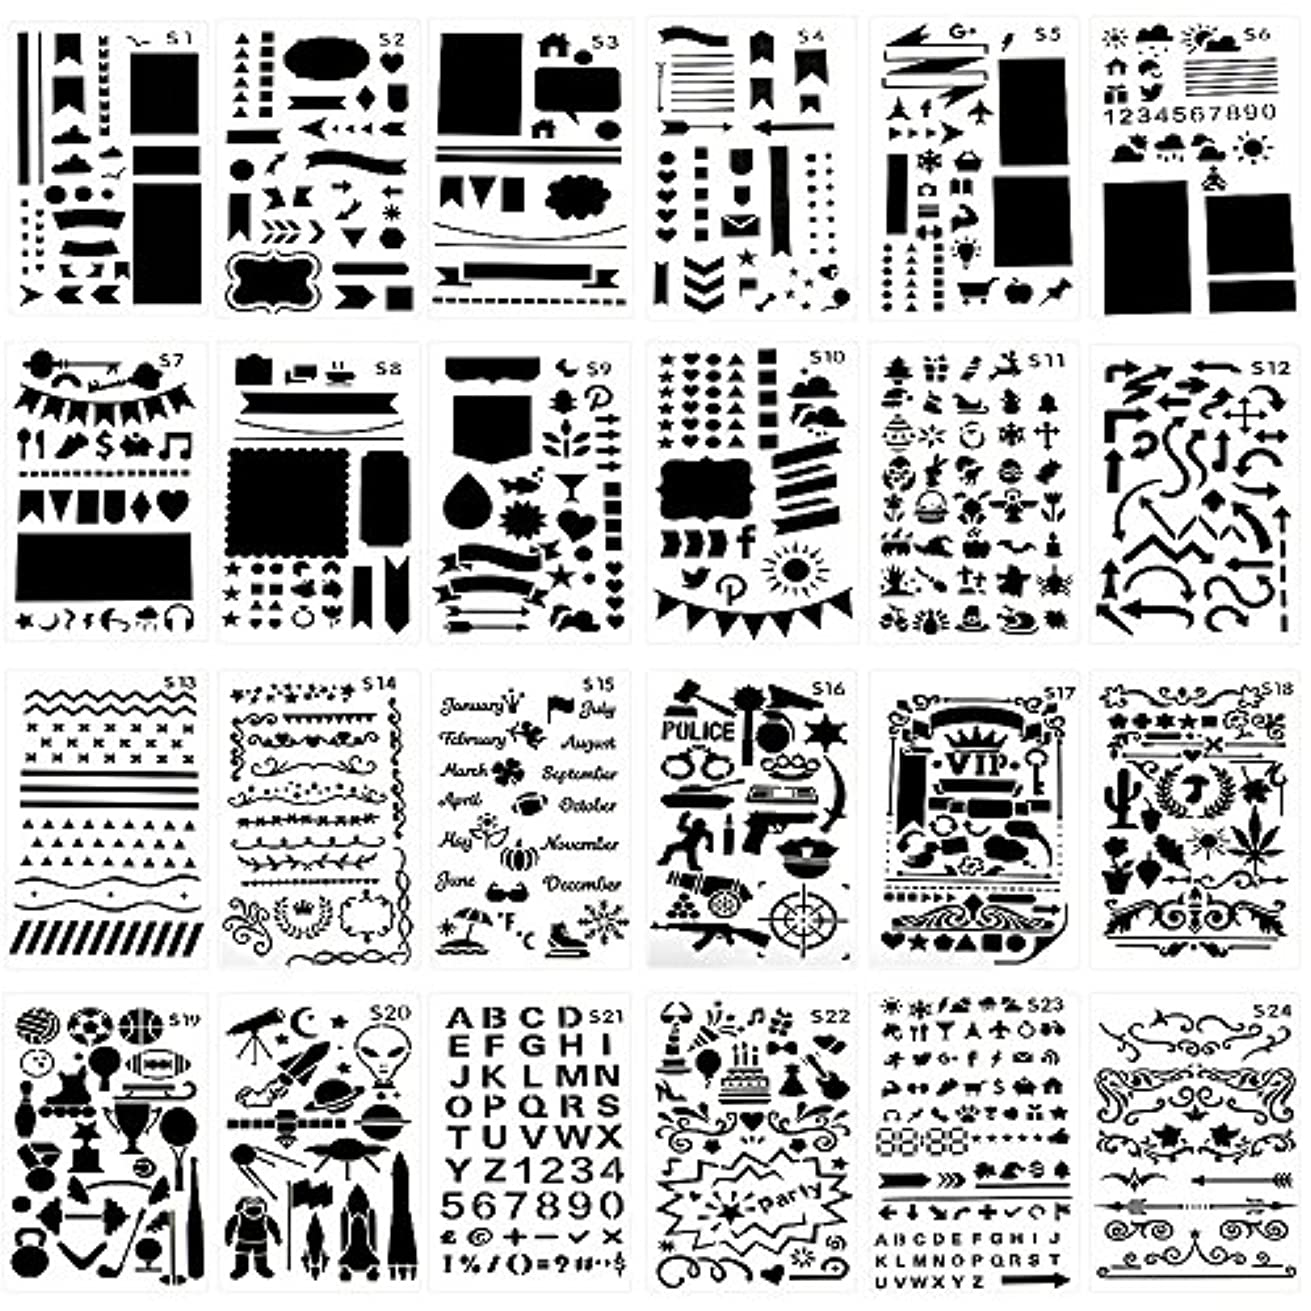 Templates Letters and Numbers, SNAGAROG 24 Templates Painting Crafts (17.8 x 10.2cm), Transparent, Painting Decoration Templates, C1-C24, Gift for Children, DIY Painting